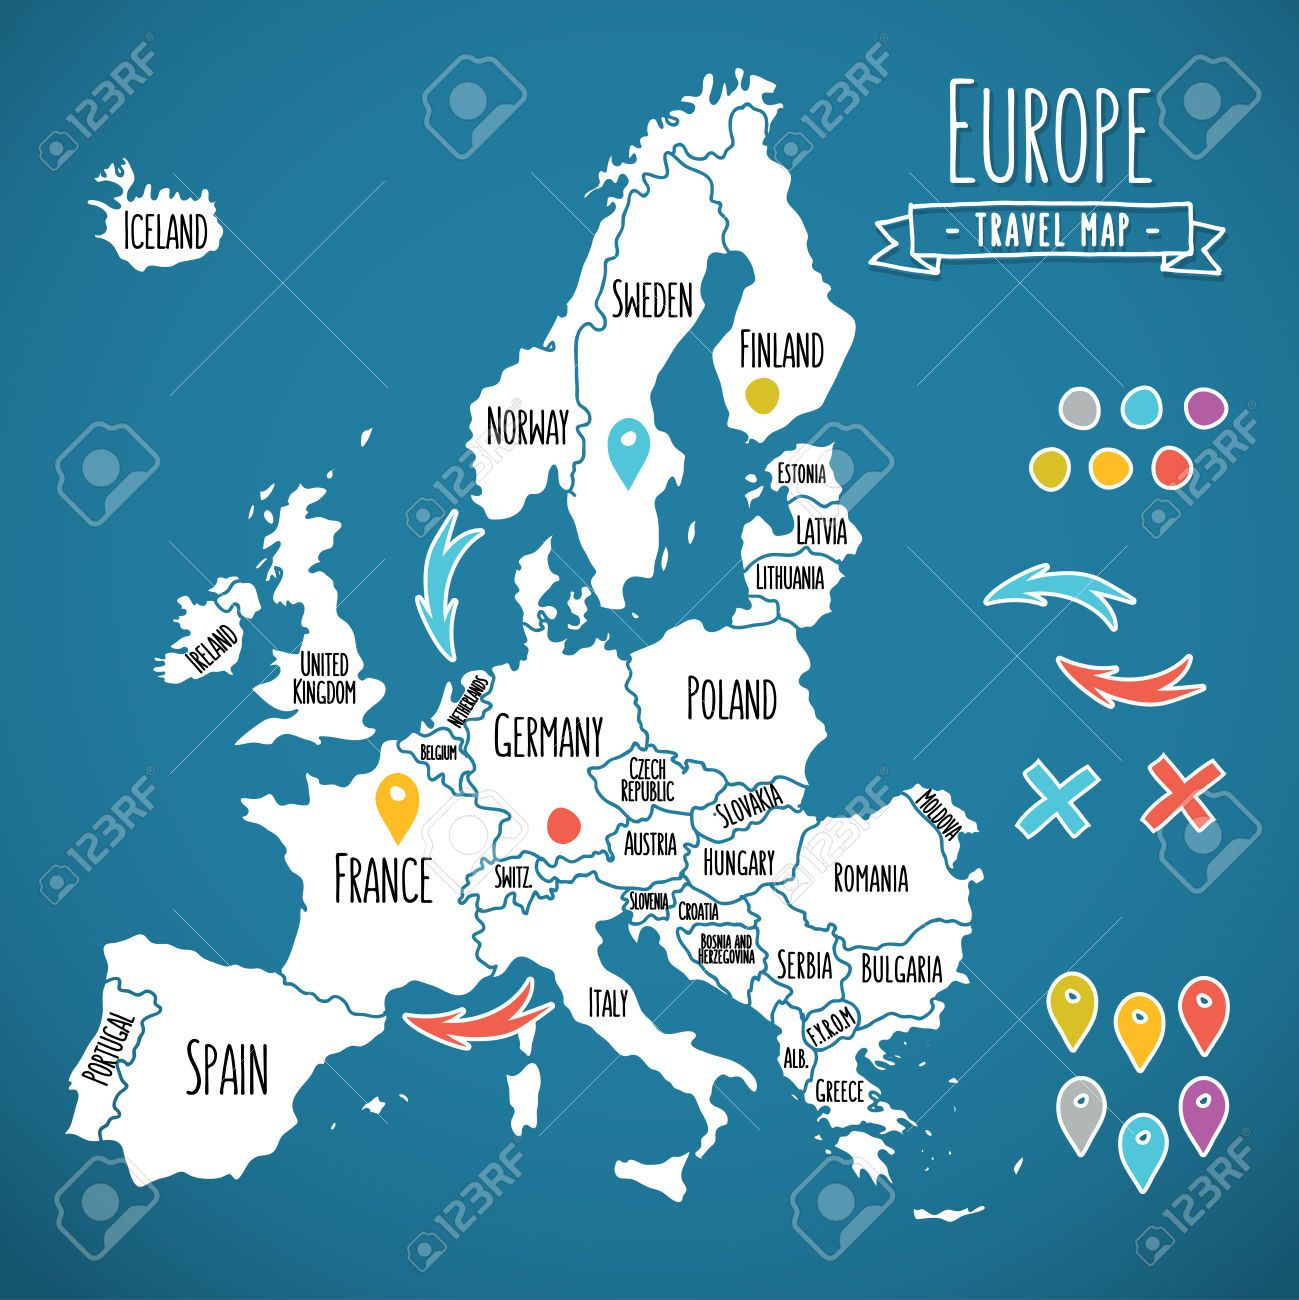 How To Draw A Map Of France.Hand Drawn Europe Map Google Search Infographic How To Draw